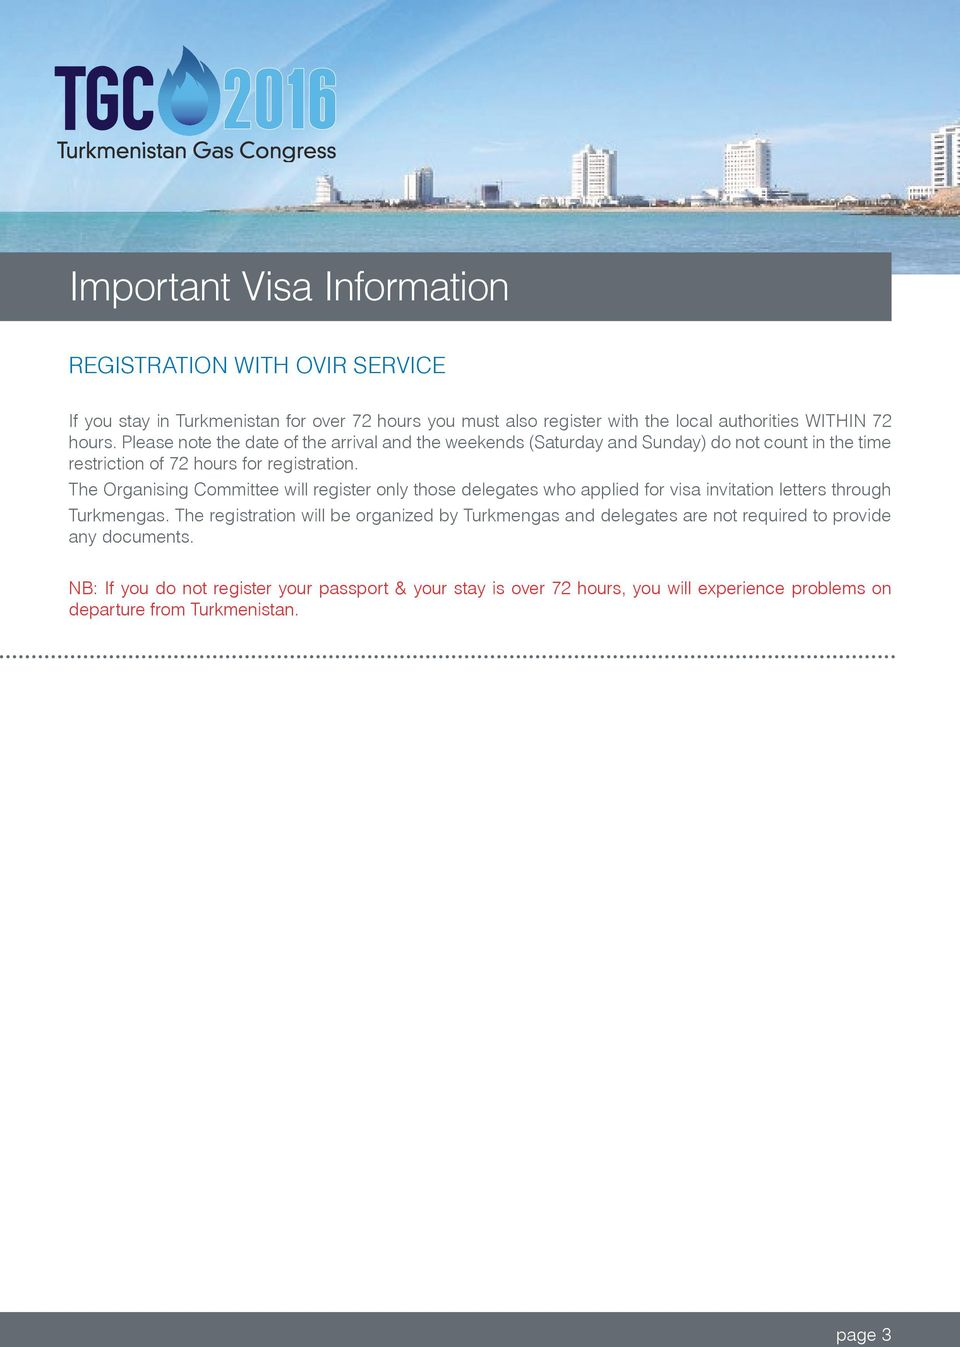 The Organising Committee will register only those delegates who applied for visa invitation letters through Turkmengas.